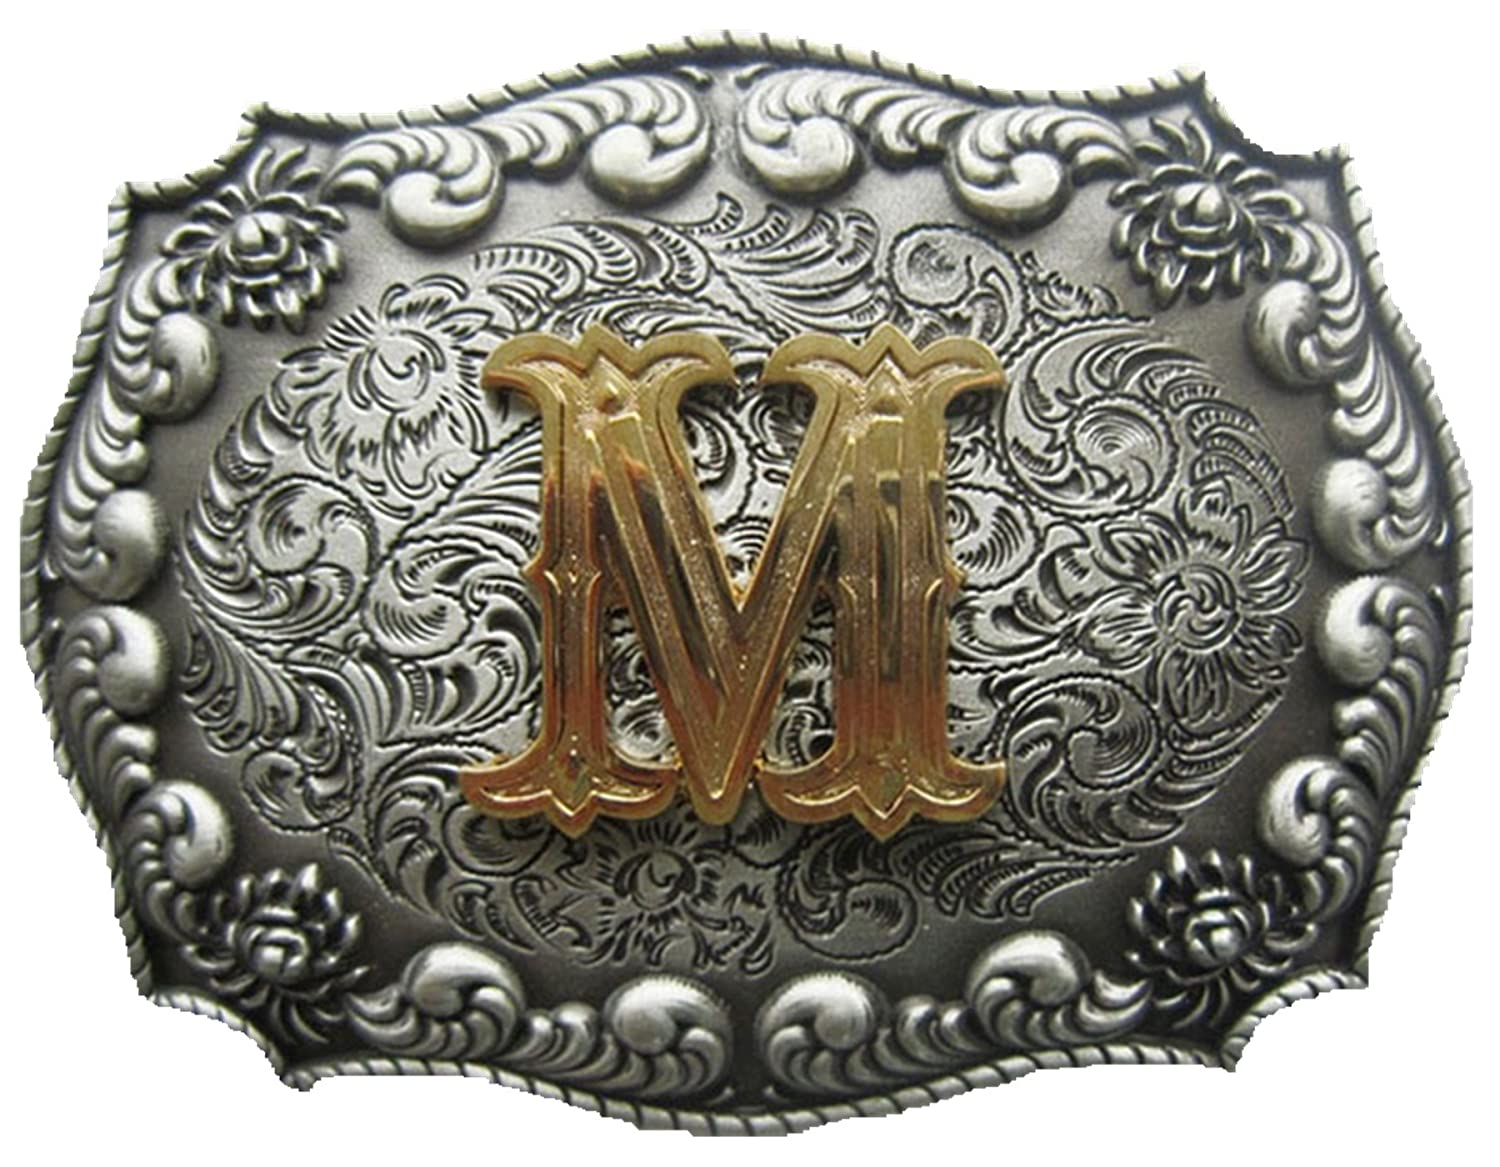 Western Cowboy Cowgirl Original Letter Belt Buckle Stock In US Gurtelschnalle